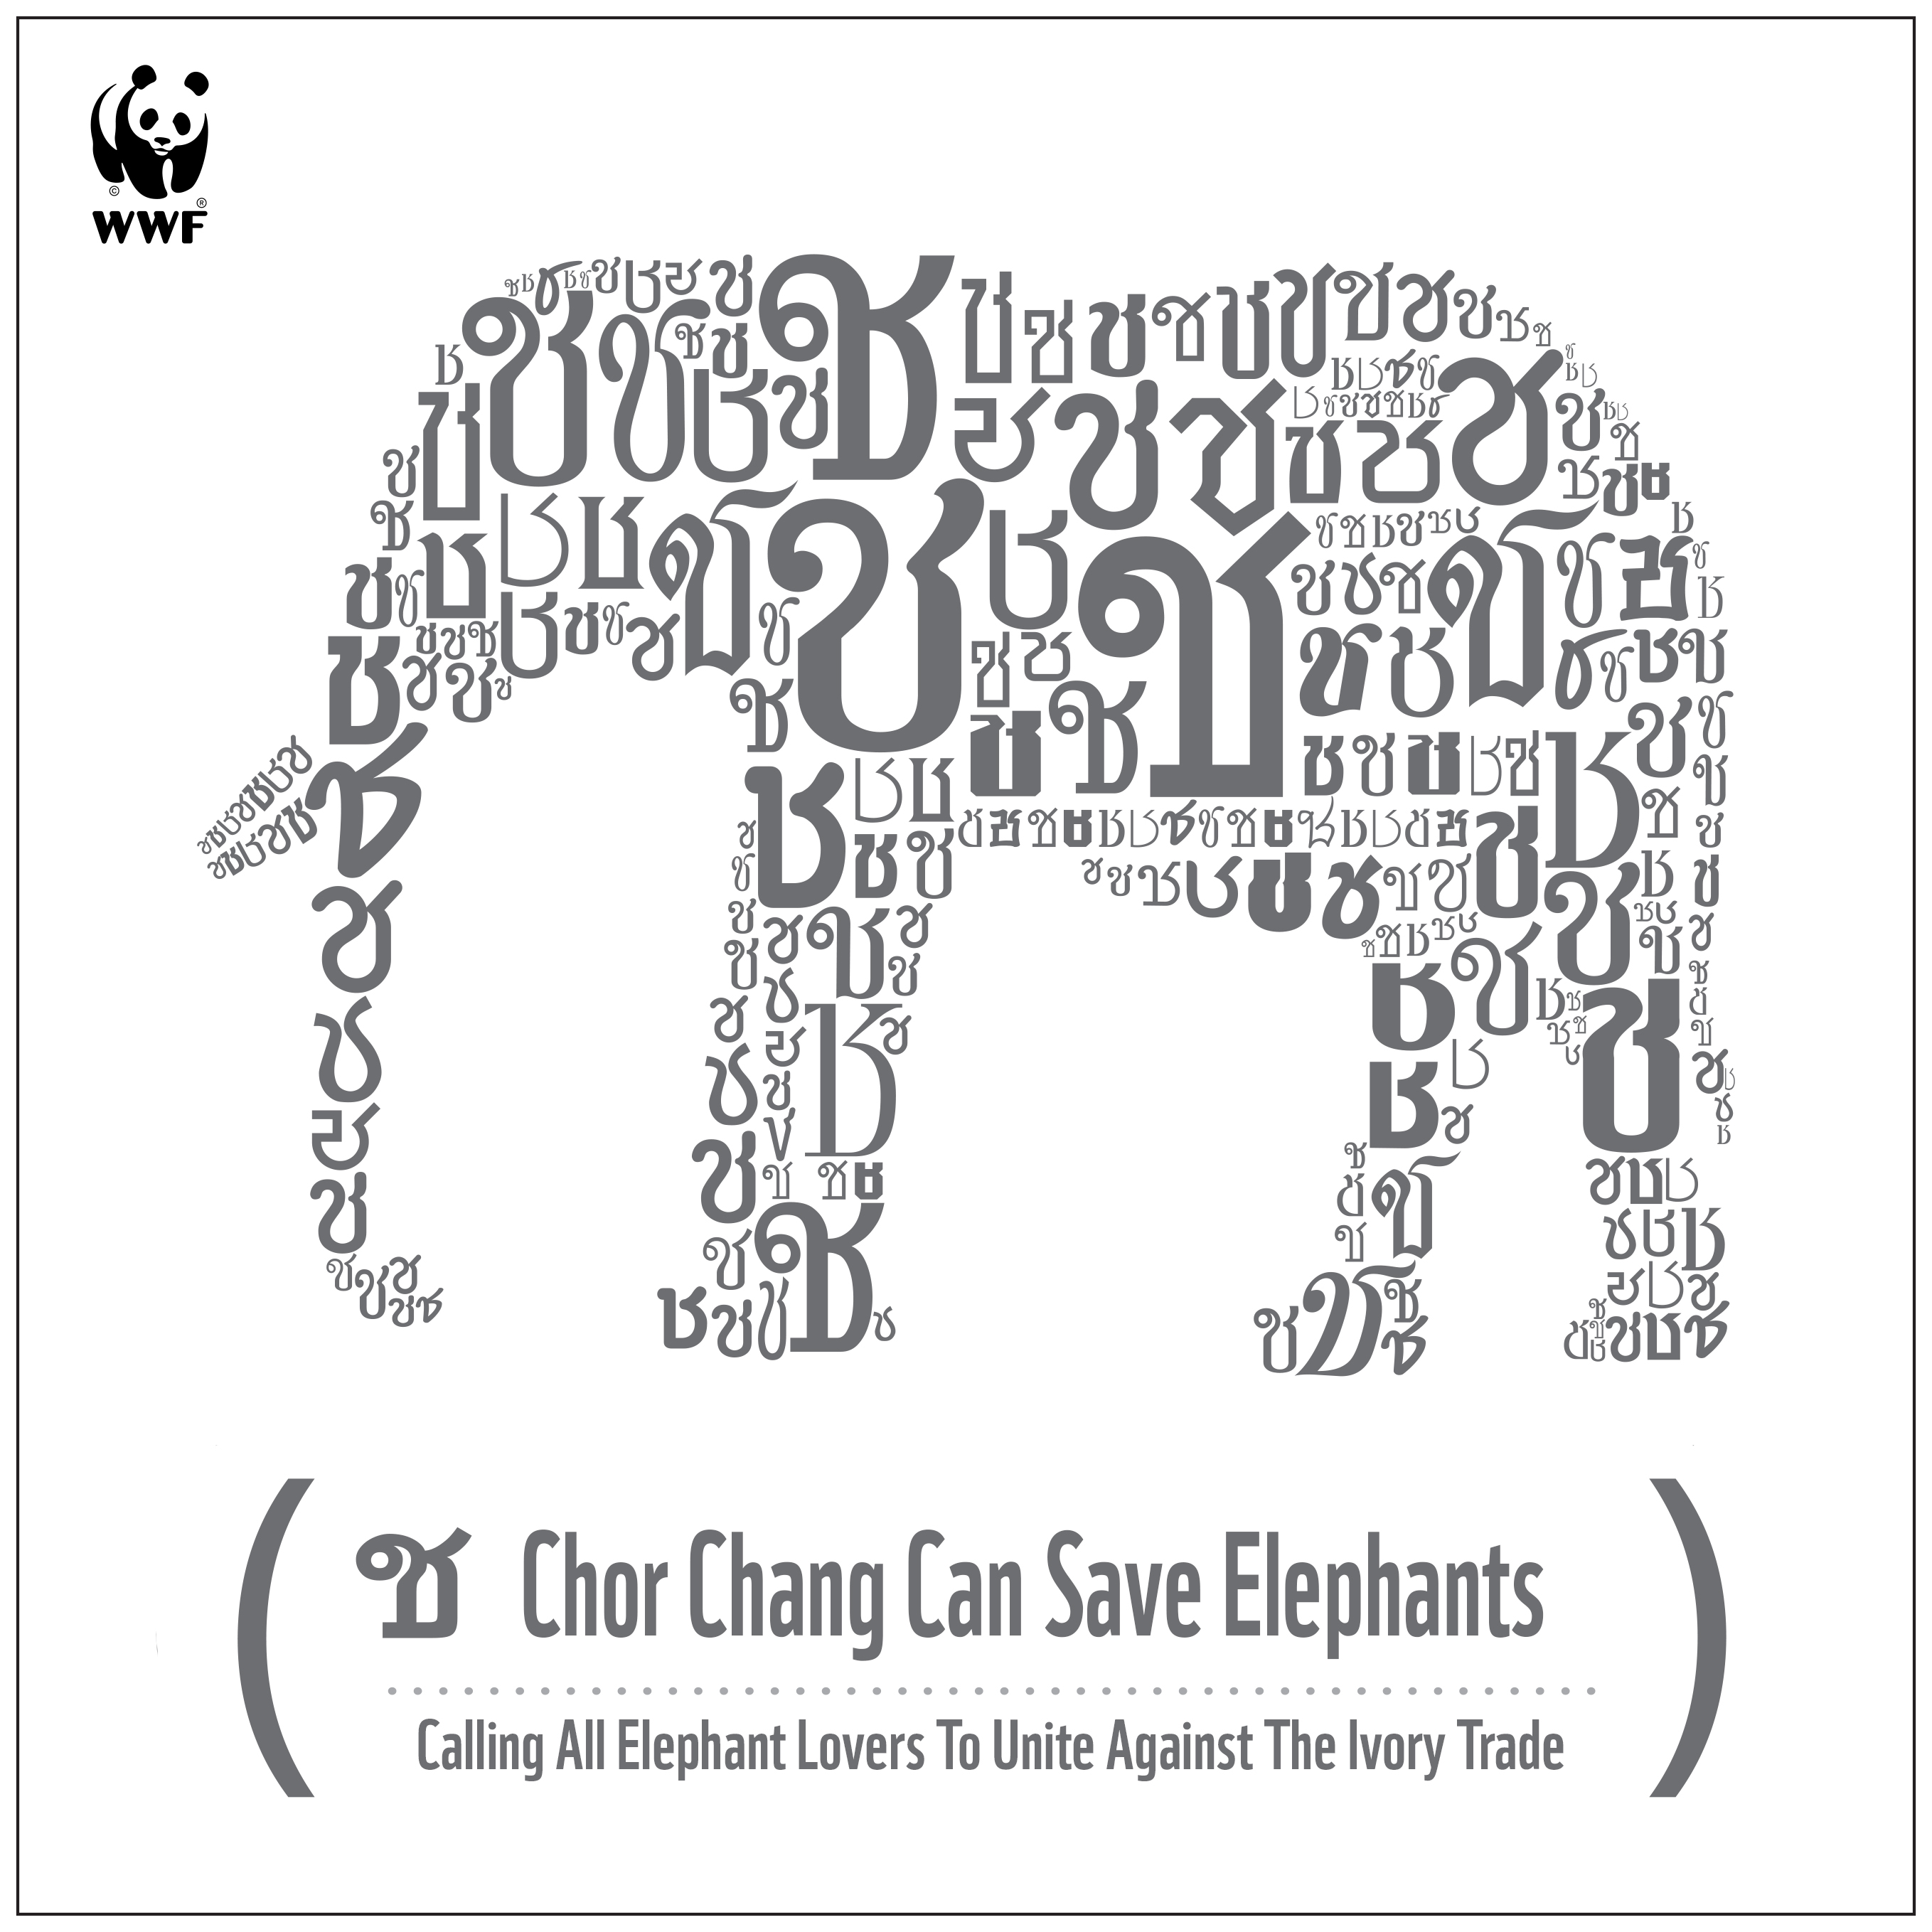 Boost For Worlds Elephants From Chor Chang Campaign And Legislation